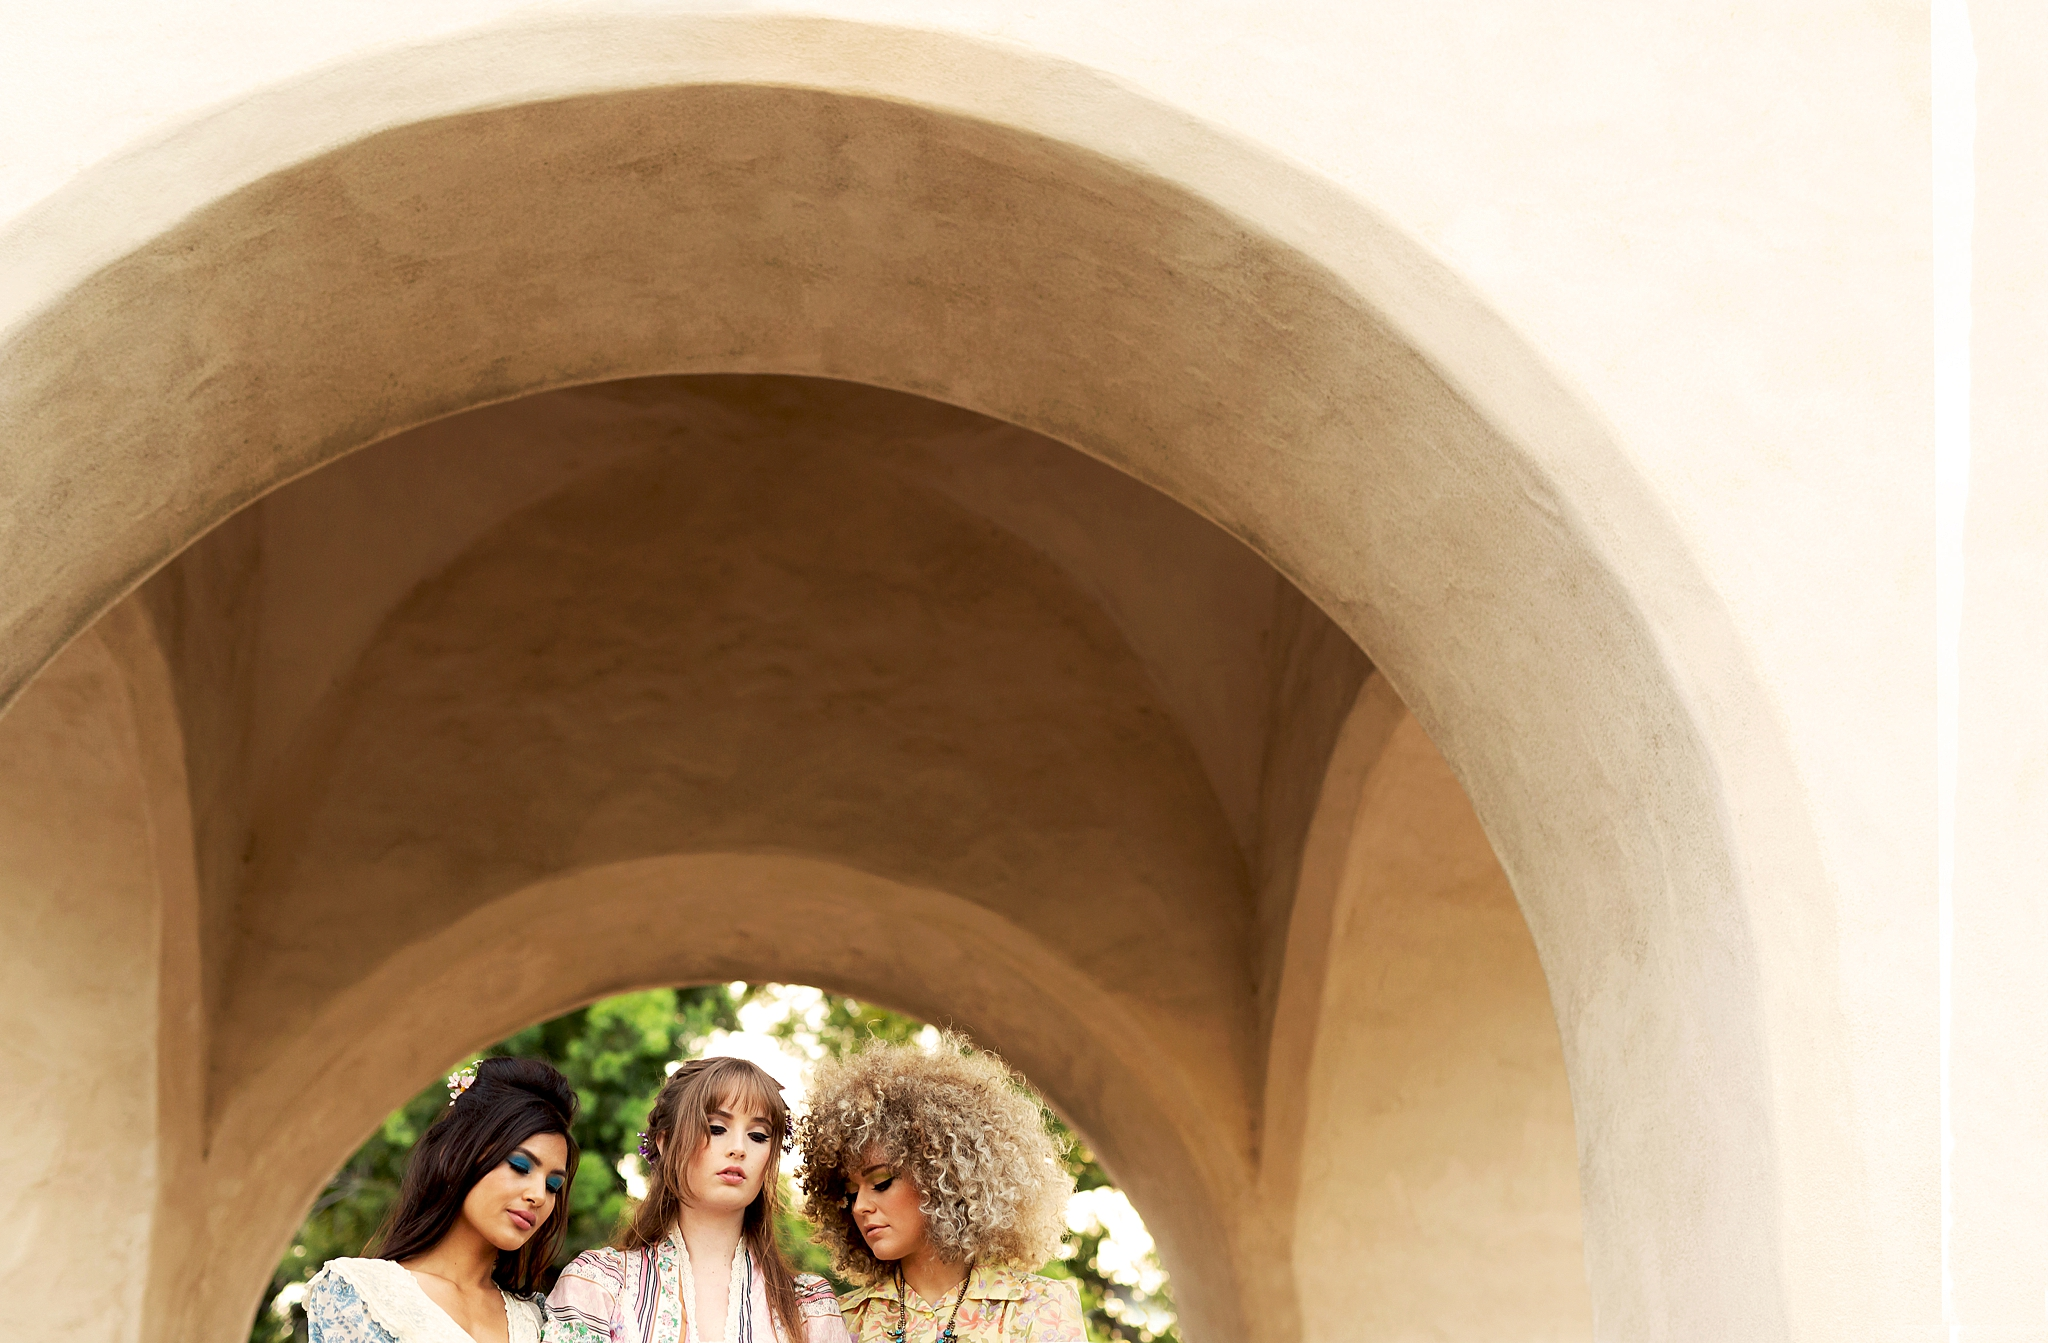 Laura Leigh, Michaela, and Ellie modeling Surrealist Vintage clothing and accessories. Taken at Balboa Park in San Diego, California.